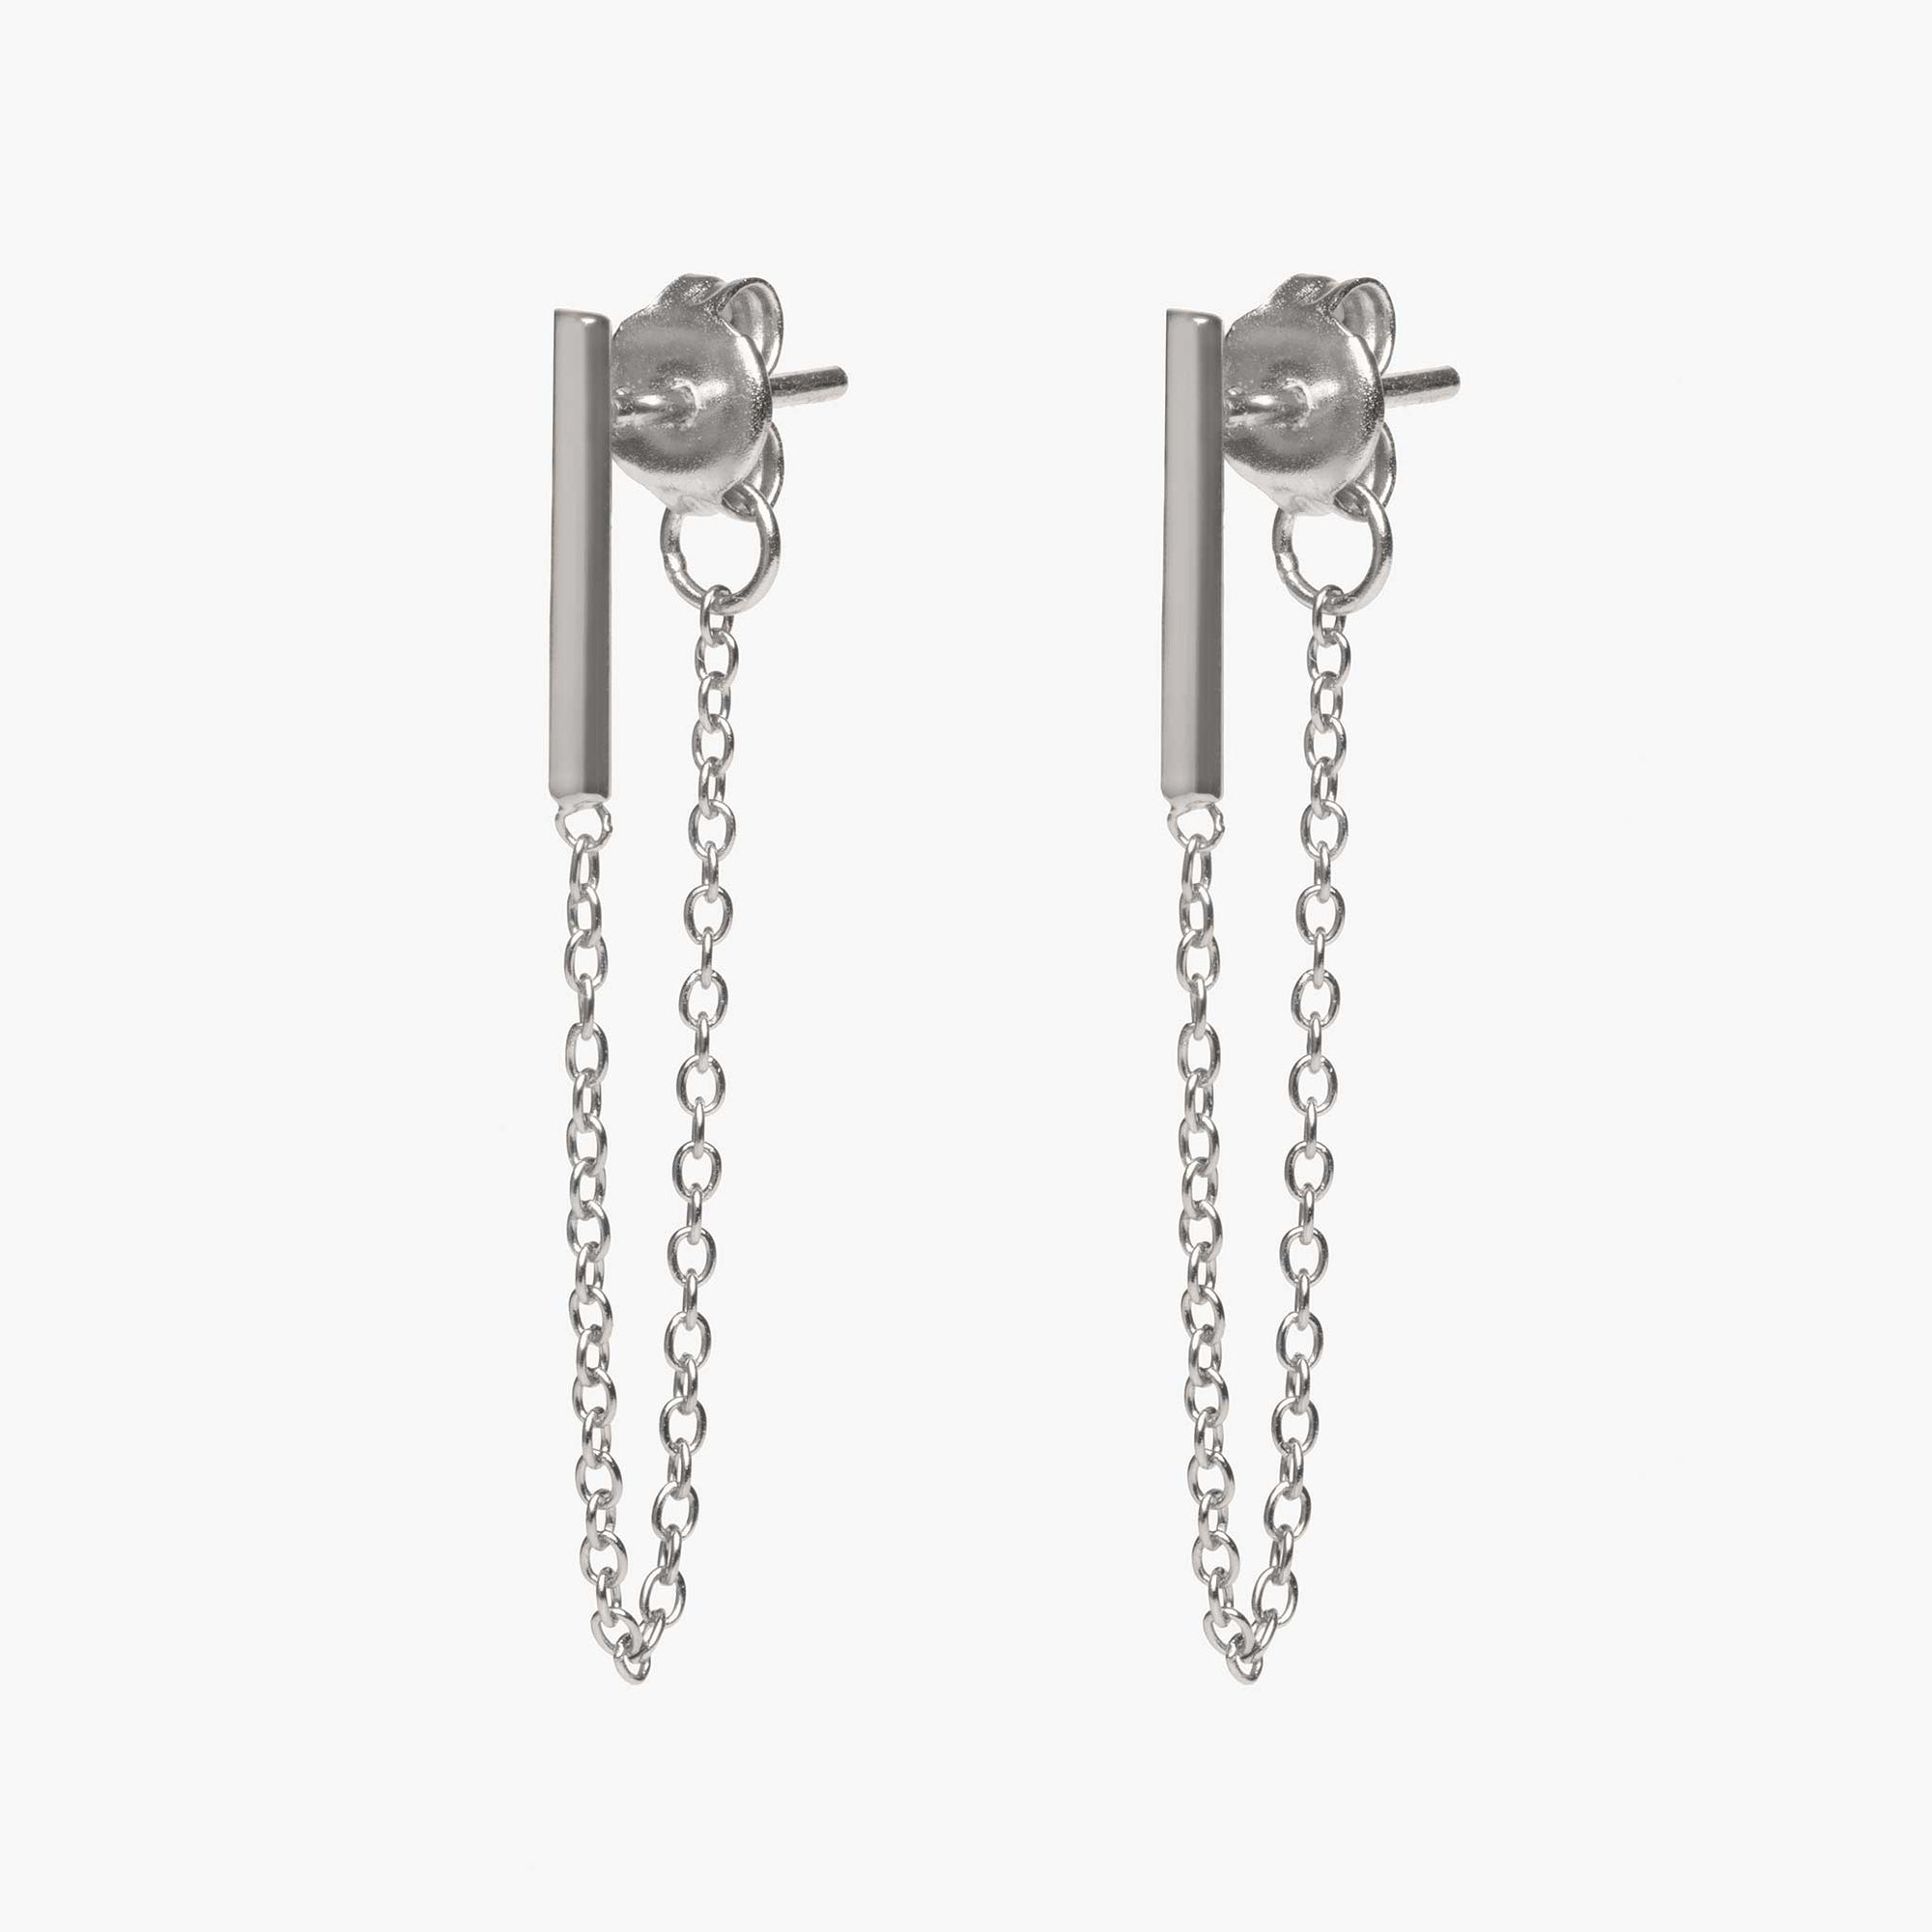 Silver bar earring with chain linked from front to back. [pair] color:silver